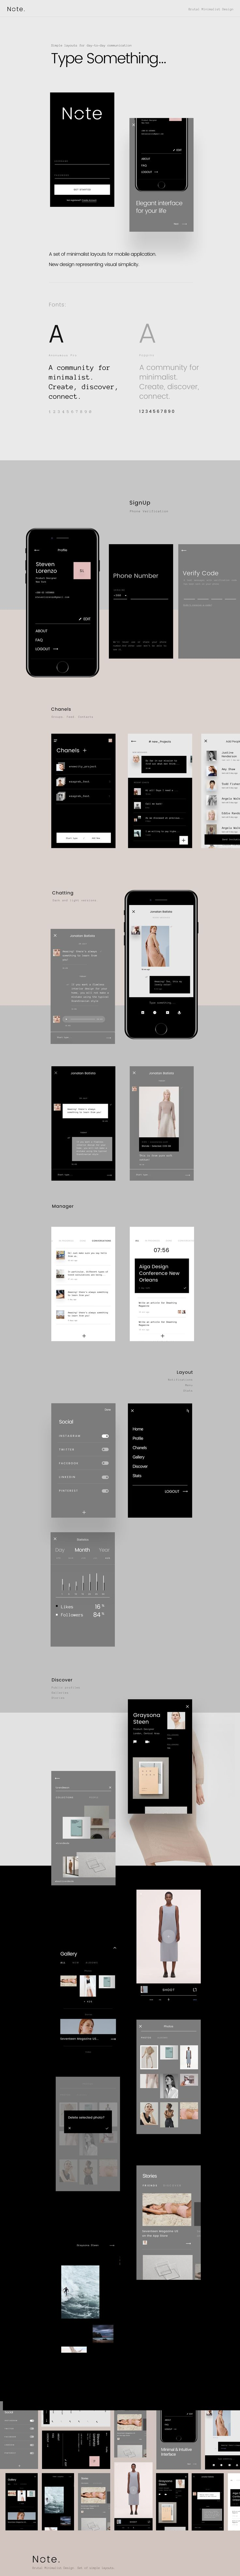 Note - Brutal Minimalist Design Concept on Behance